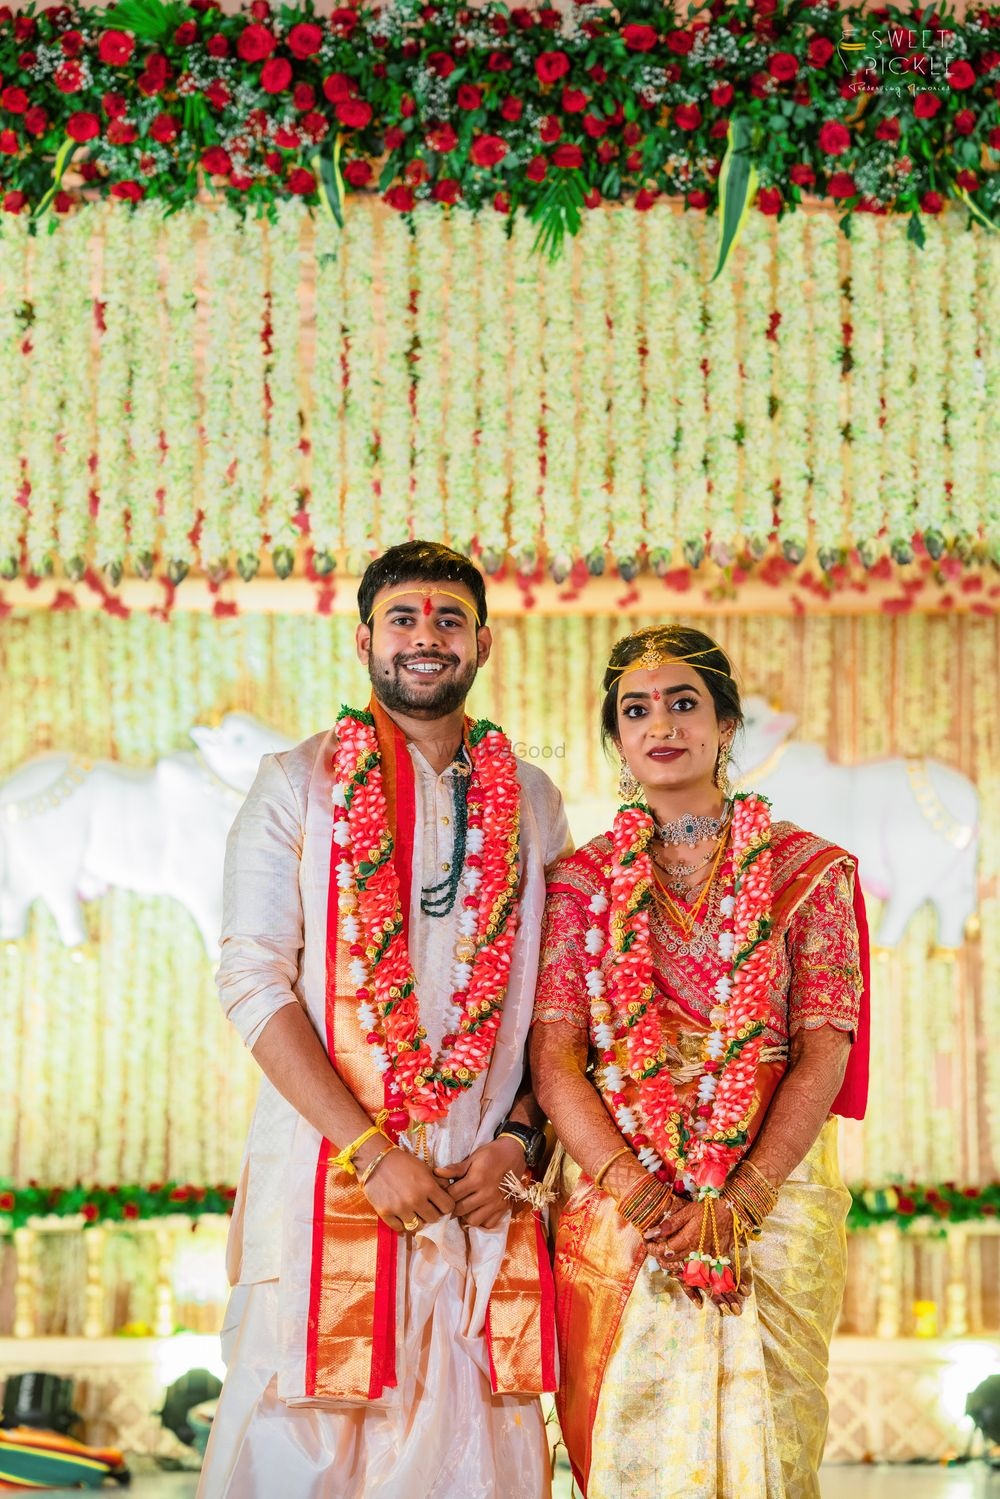 Photo From Sanjana & Varun - By Sweet Pickle Pictures